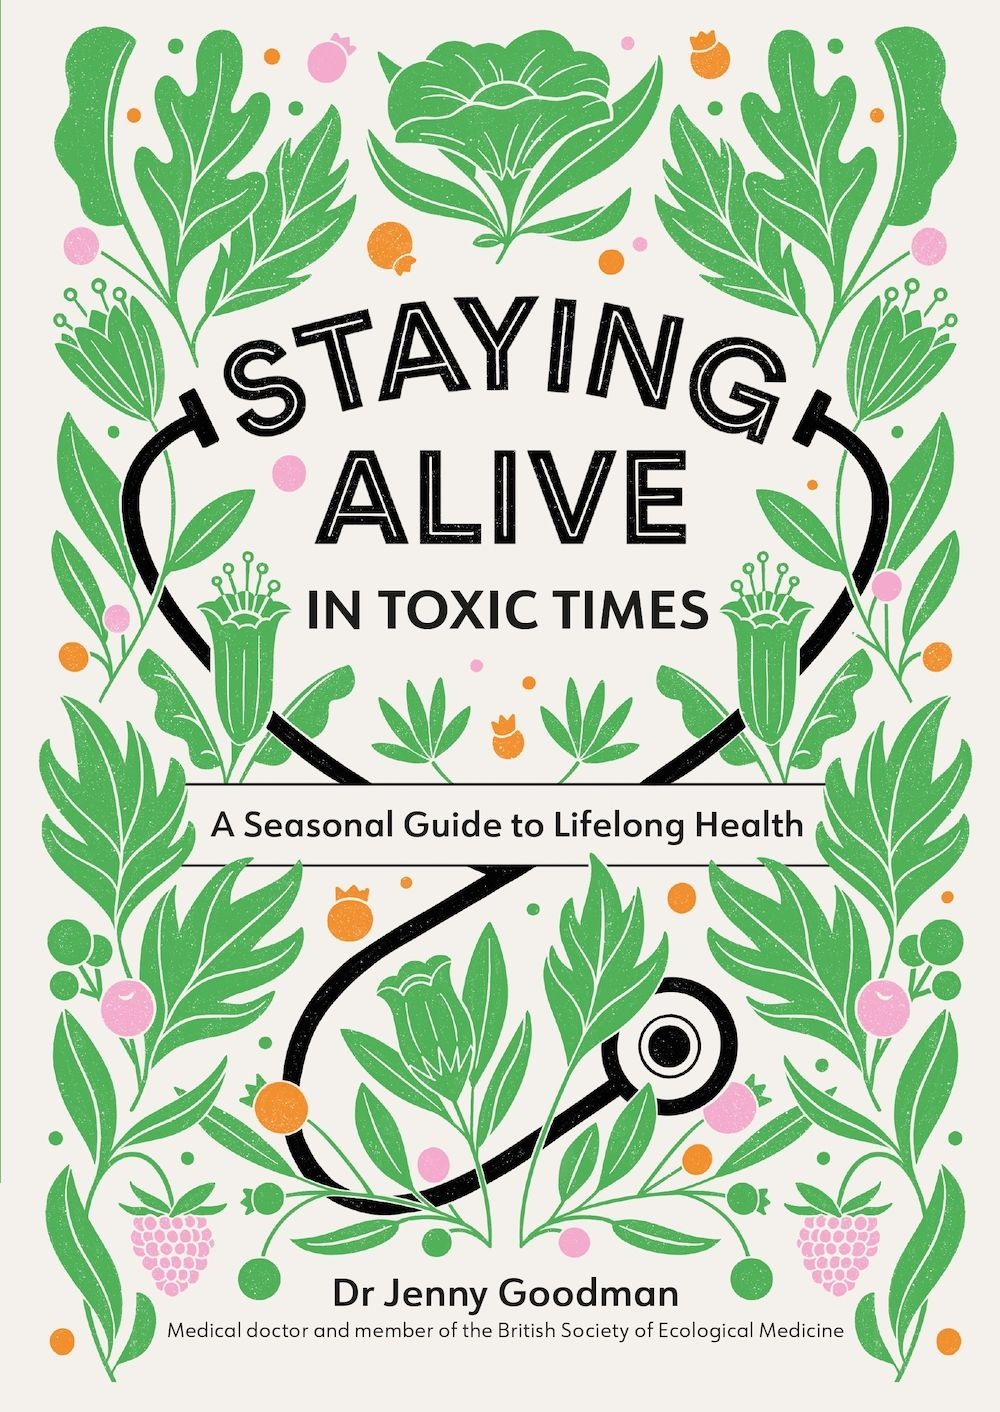 Staying-Alive-in-toxic-times